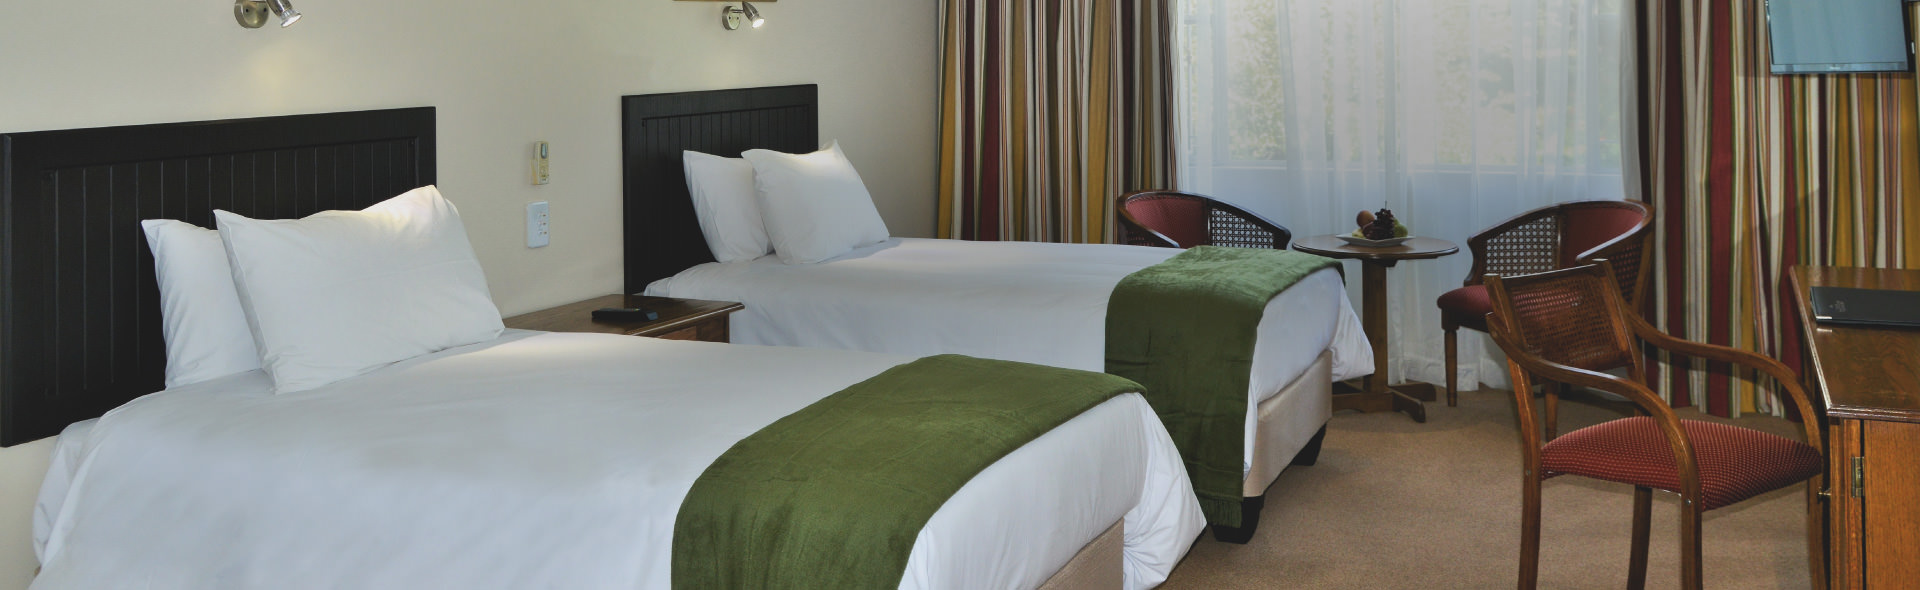 Park Hotel's Deluxe Twin room with two three quarter beds